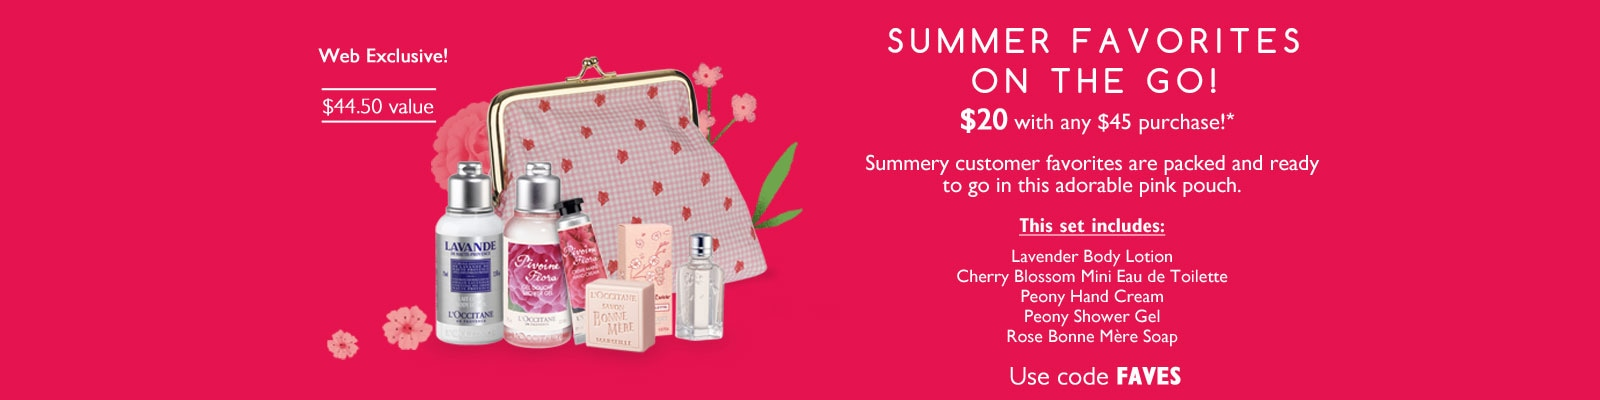 Summer Favorites on the go!